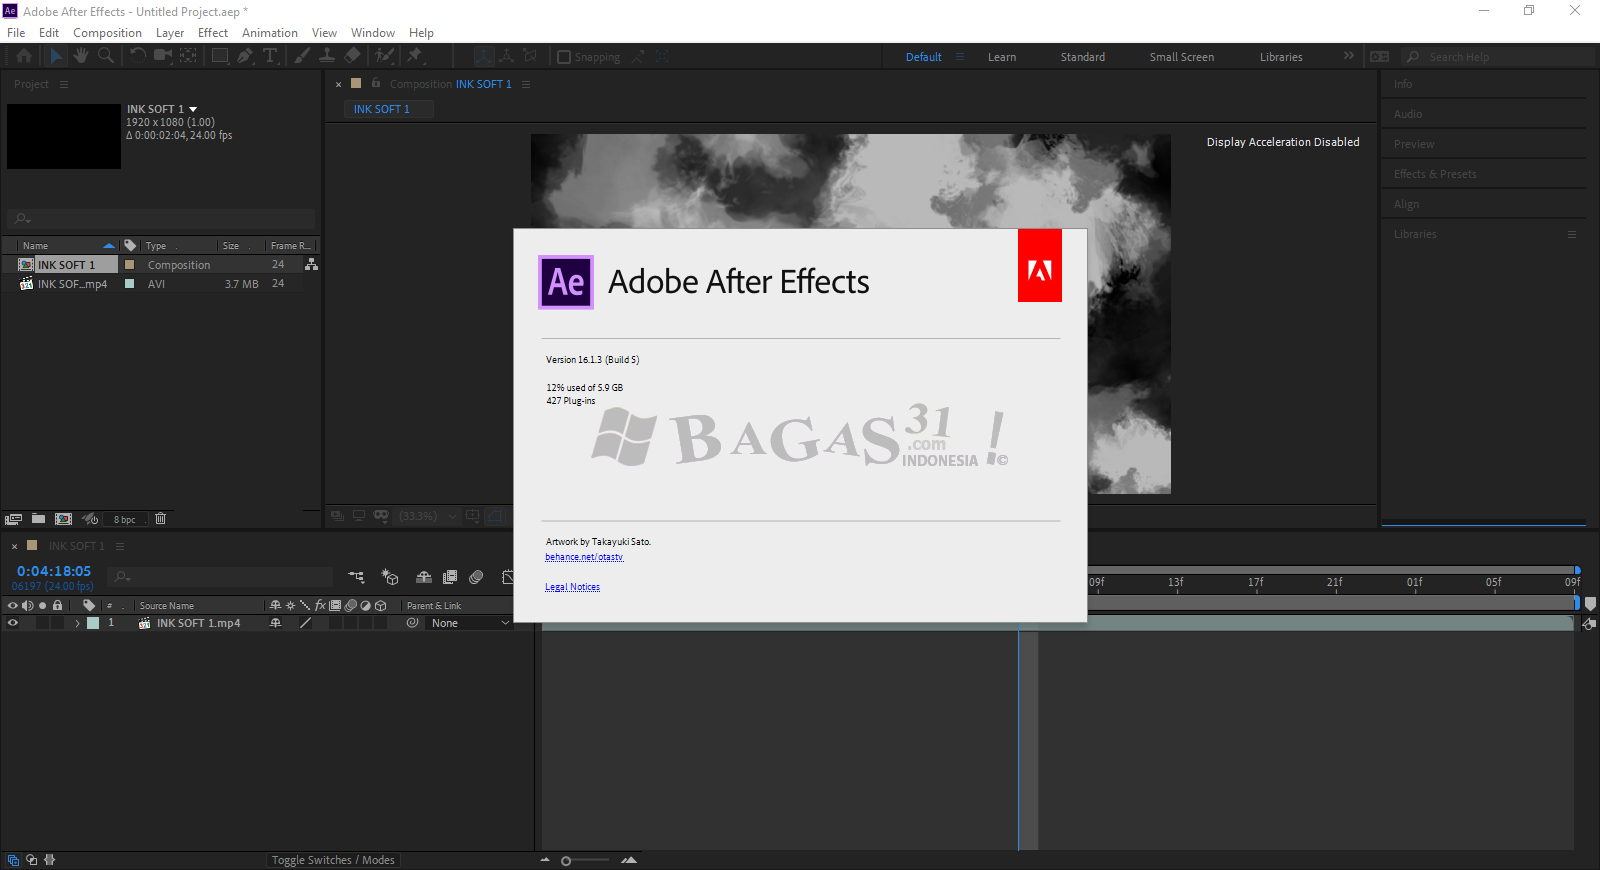 Adobe After Effects CC 2019 v16.1.3.5 Full Version